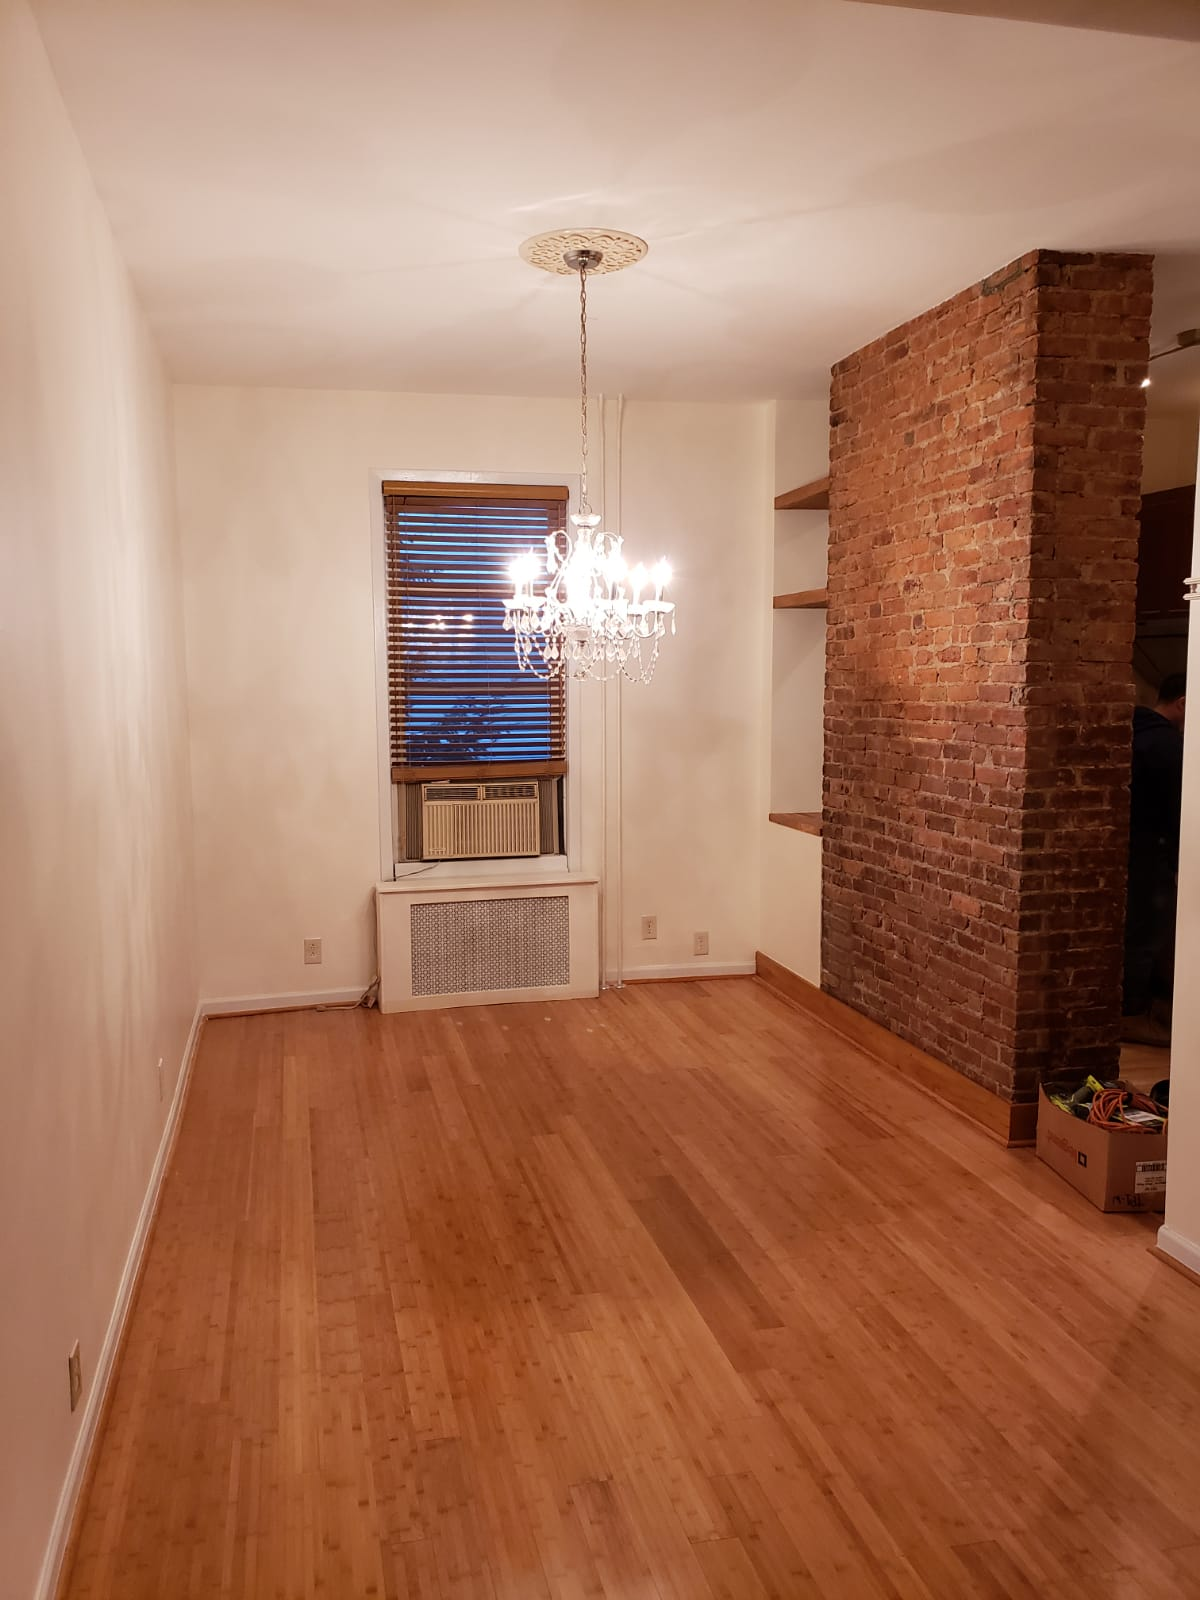 Custom floating shelves, trim work and moulding with newly refinished brick wall